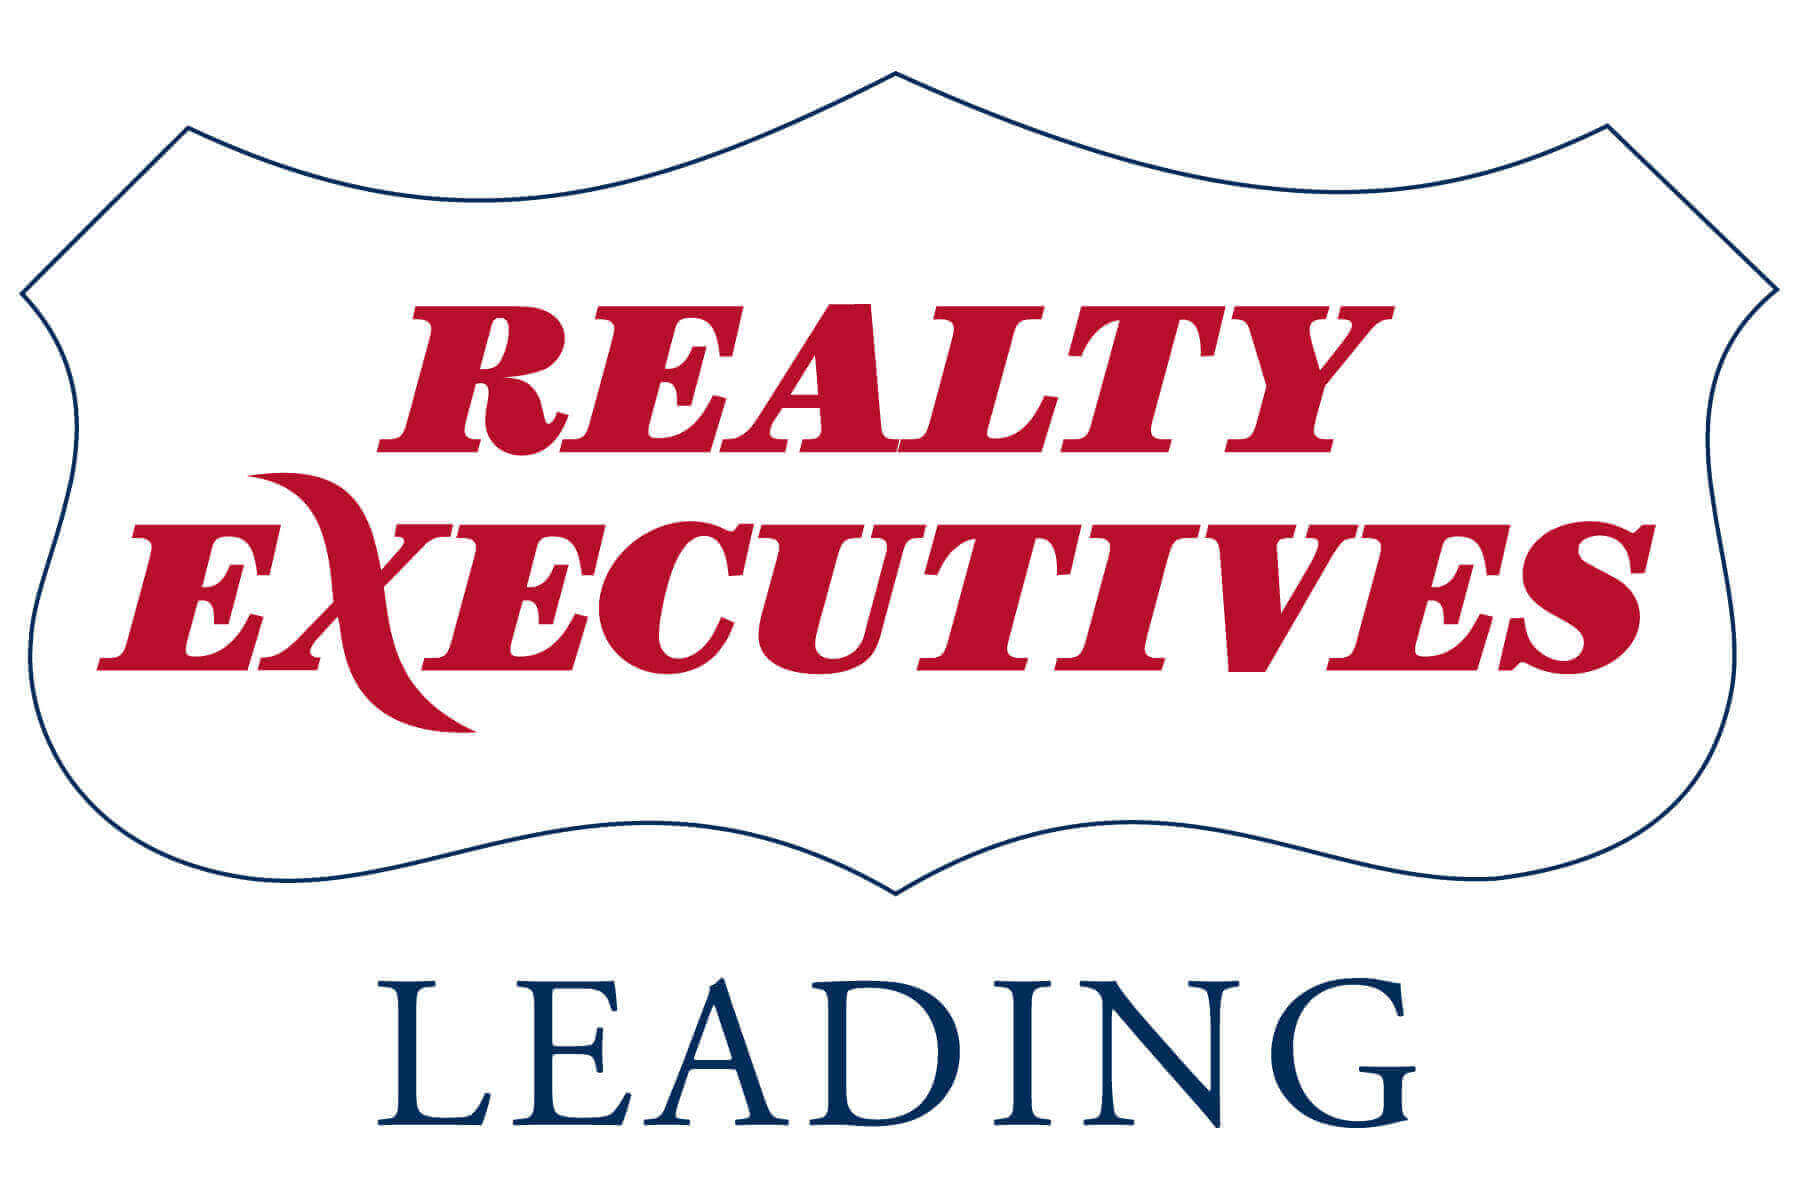 Realty Executives Leading